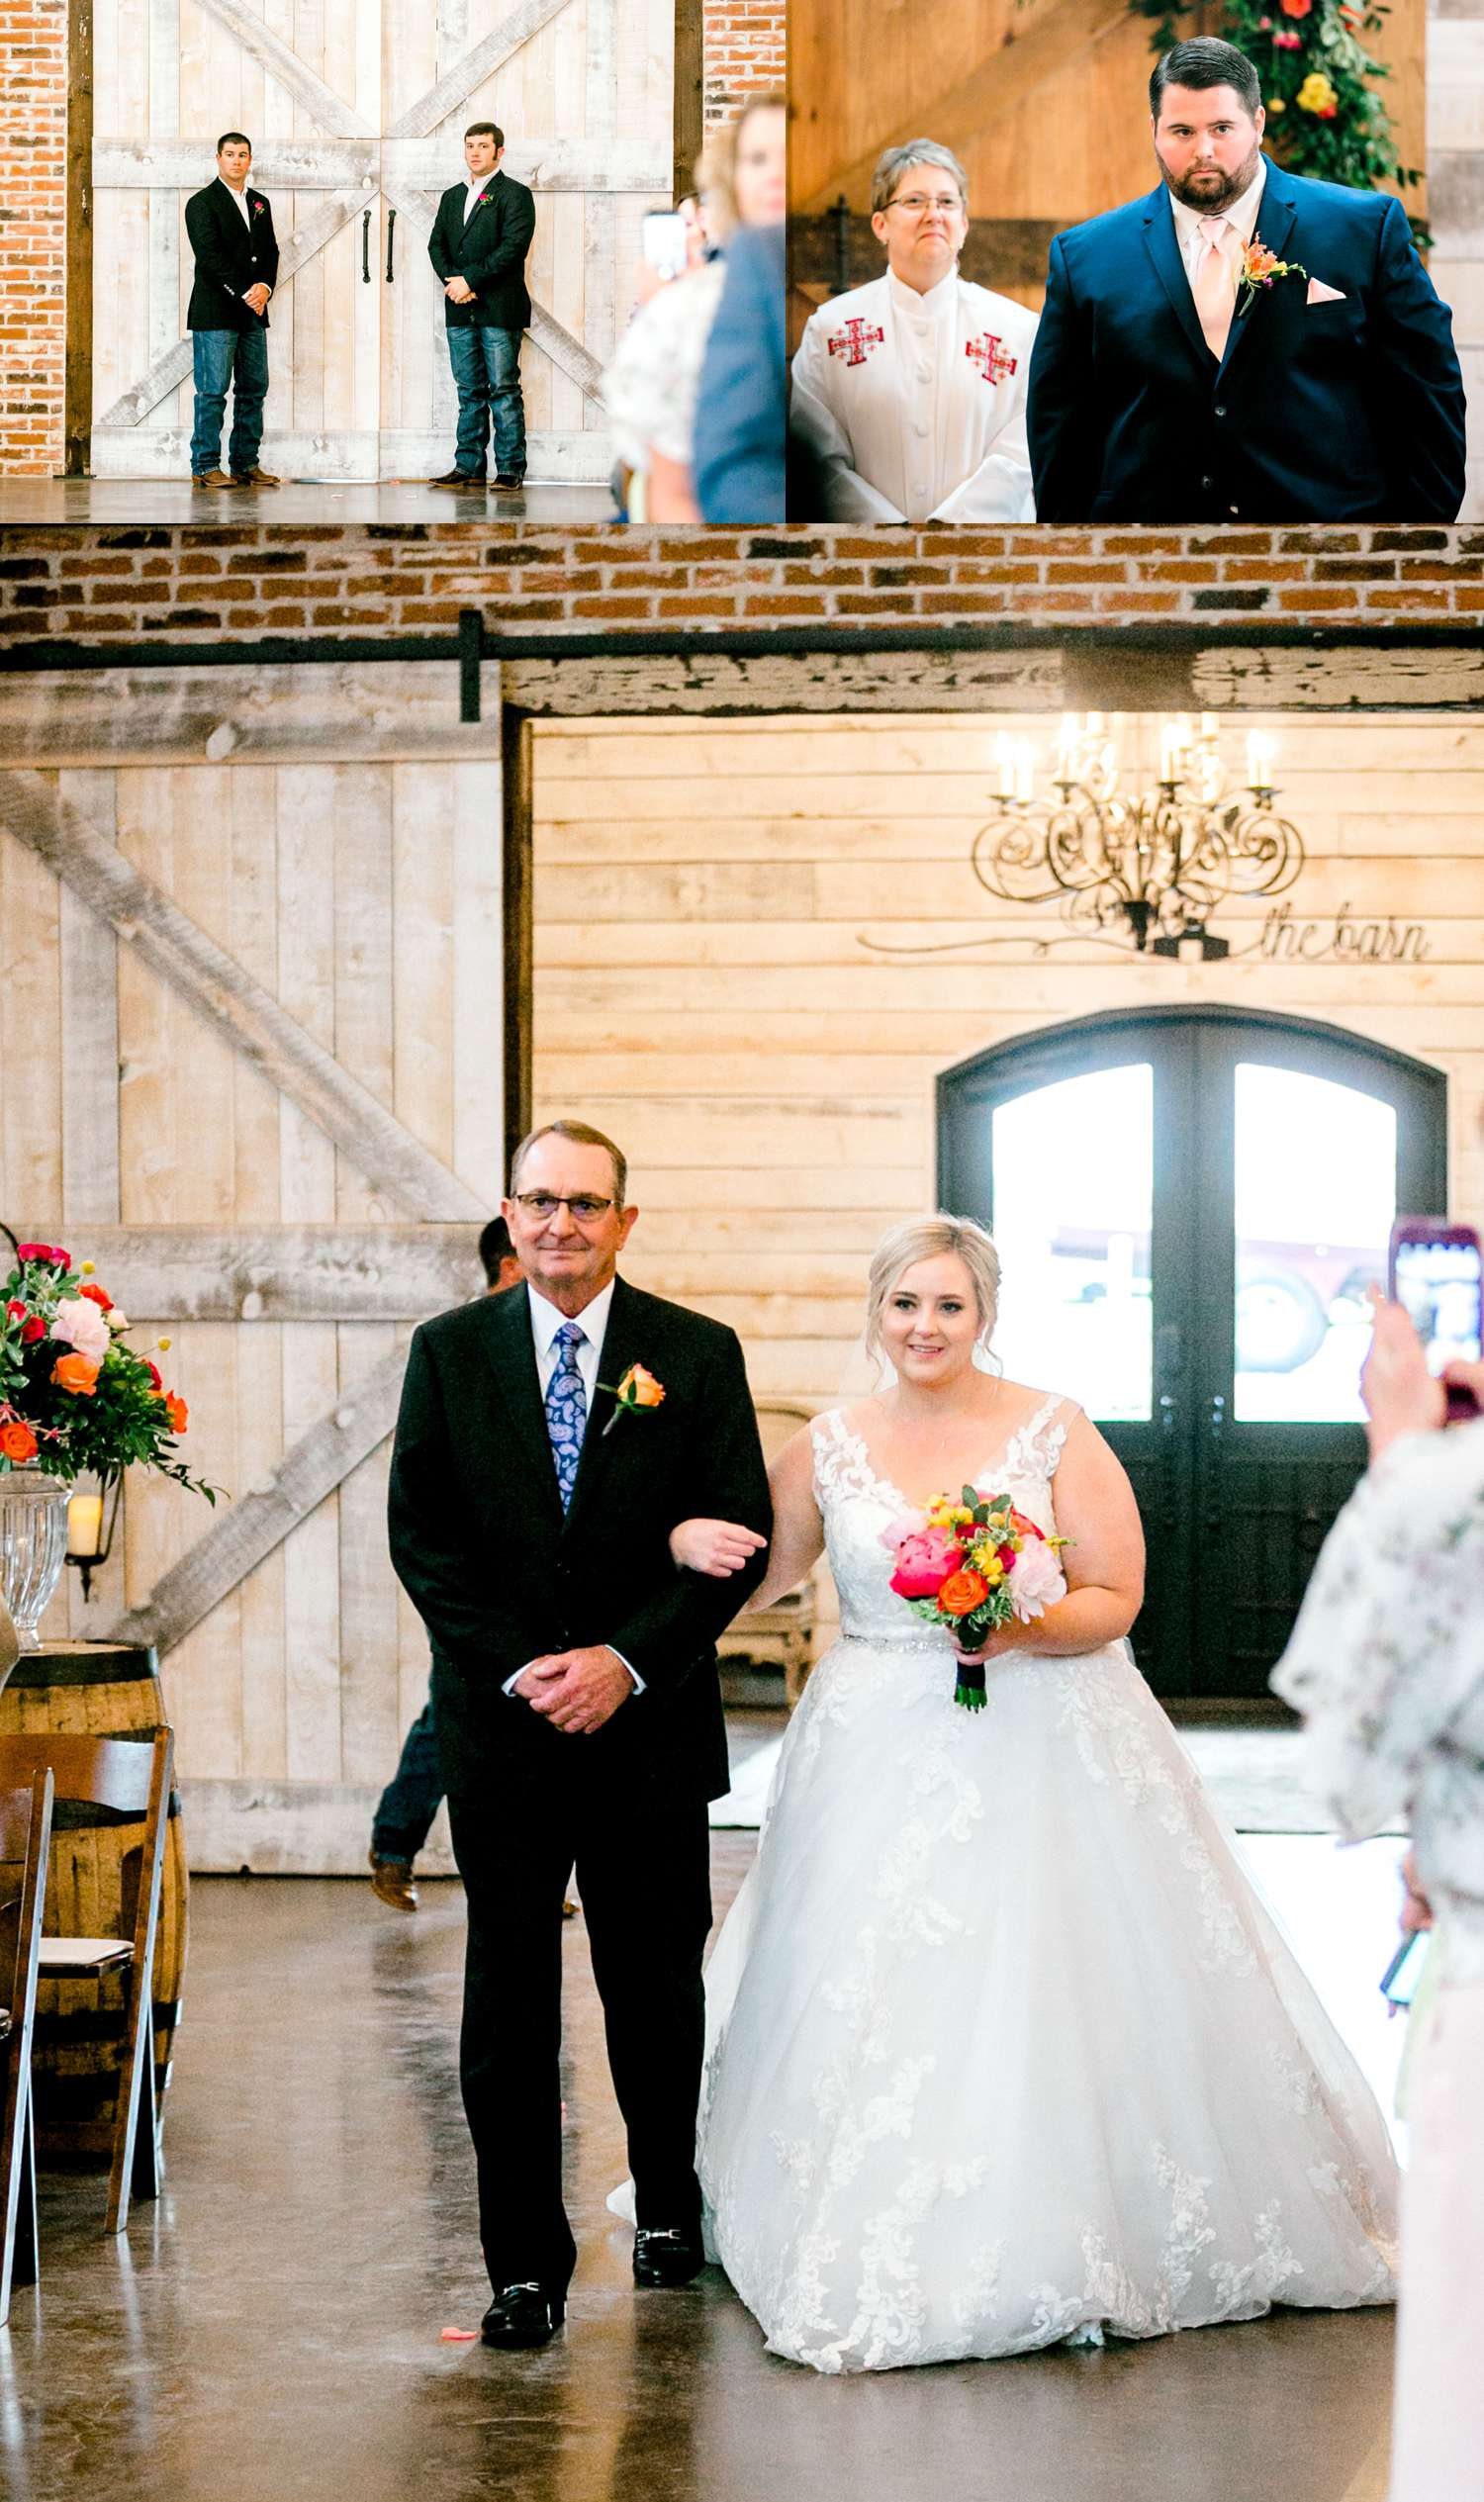 TIMMI+JORDAN_IRVINE_EBERLEY_BROOKS_EVENTS_ALLEEJ_WEDDINGS_0065.jpg